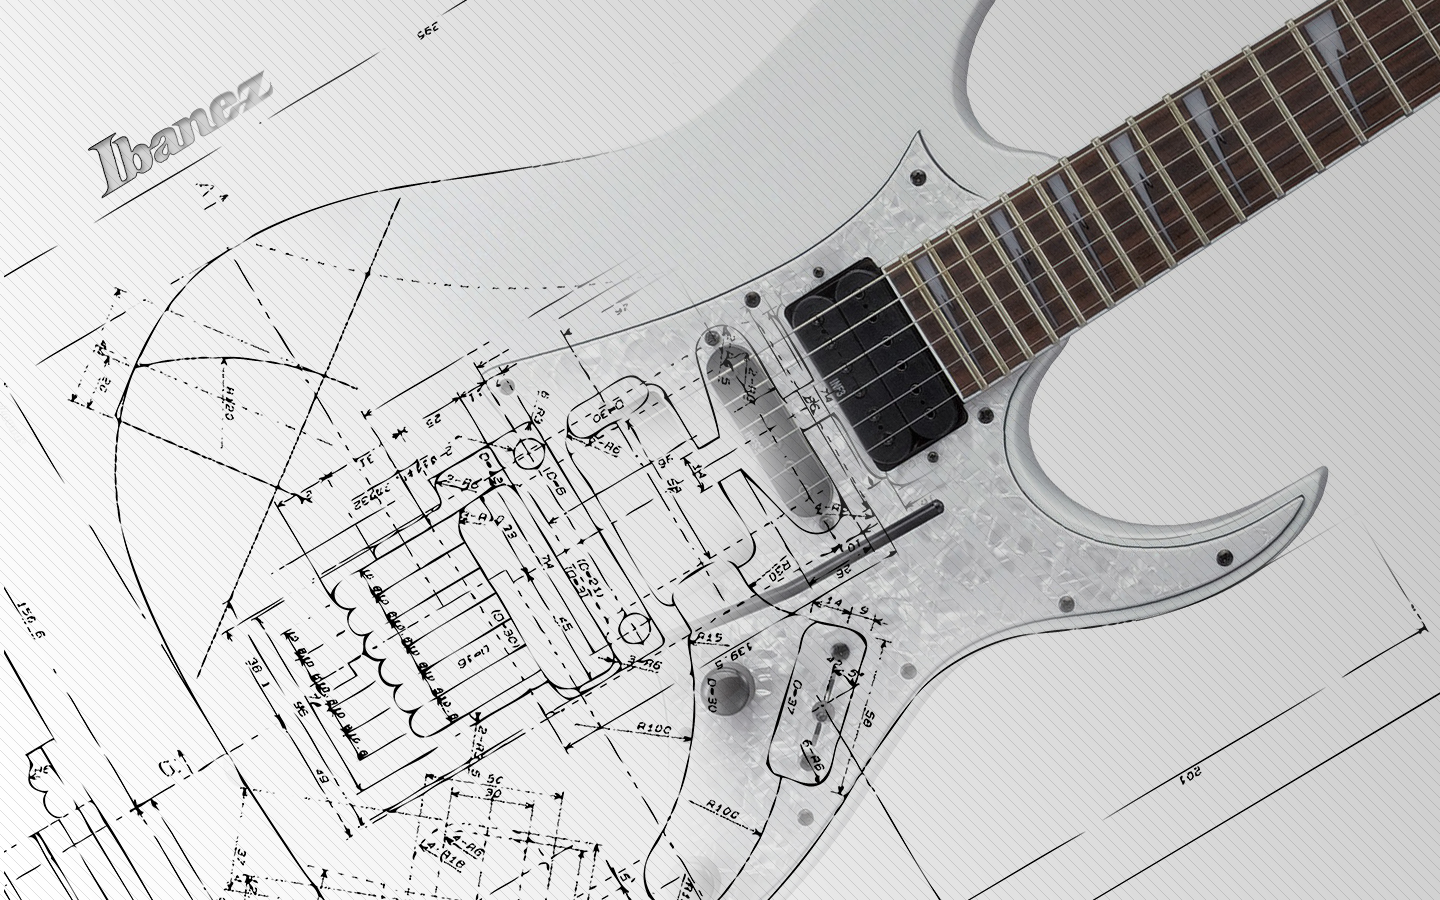 Ibanez Electric Guitar Blueprint